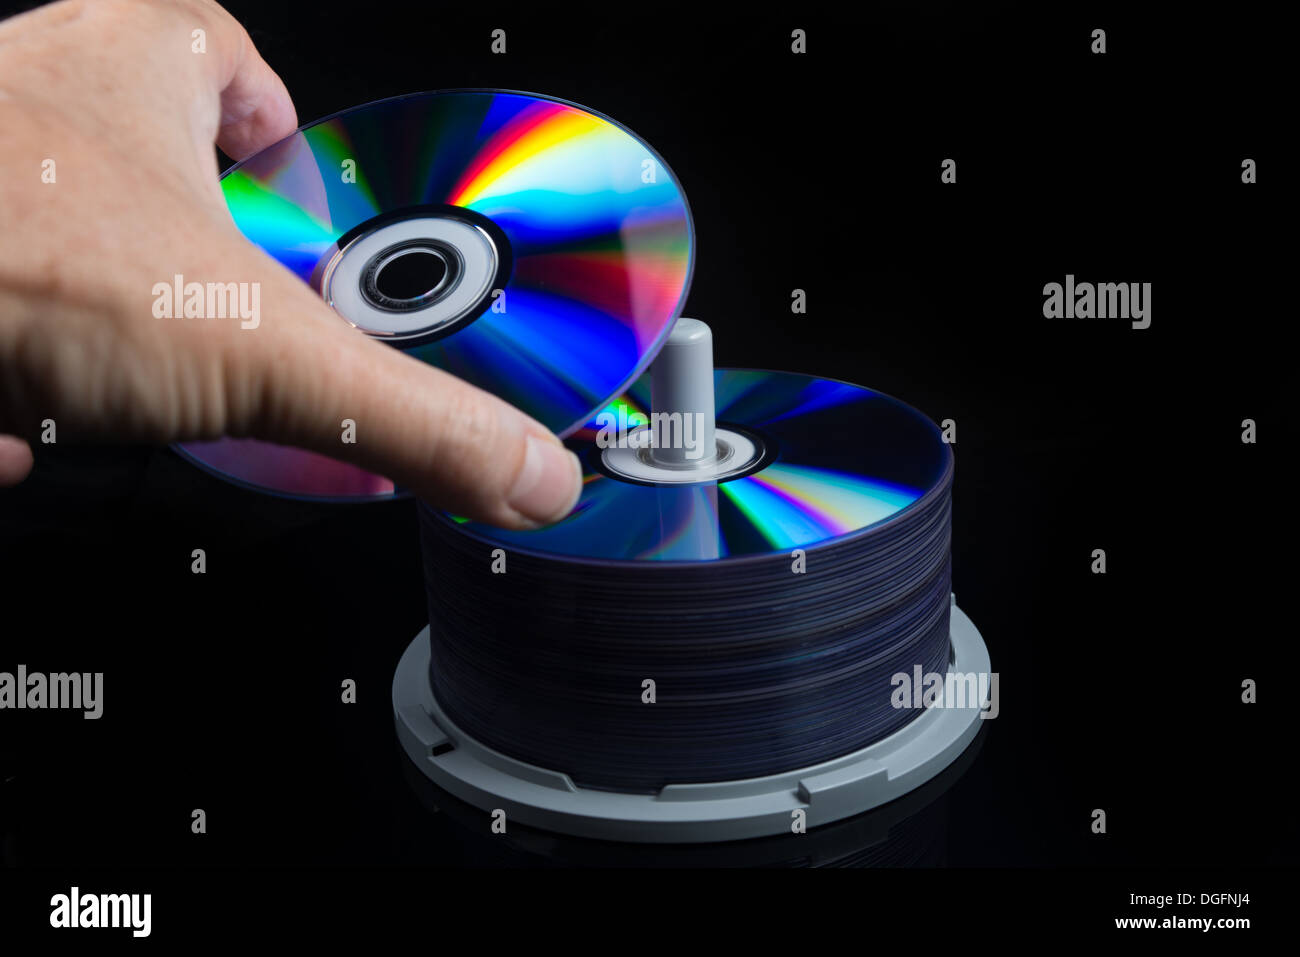 hand picking a dvd from a stack, cd, blu ray, - Stock Image